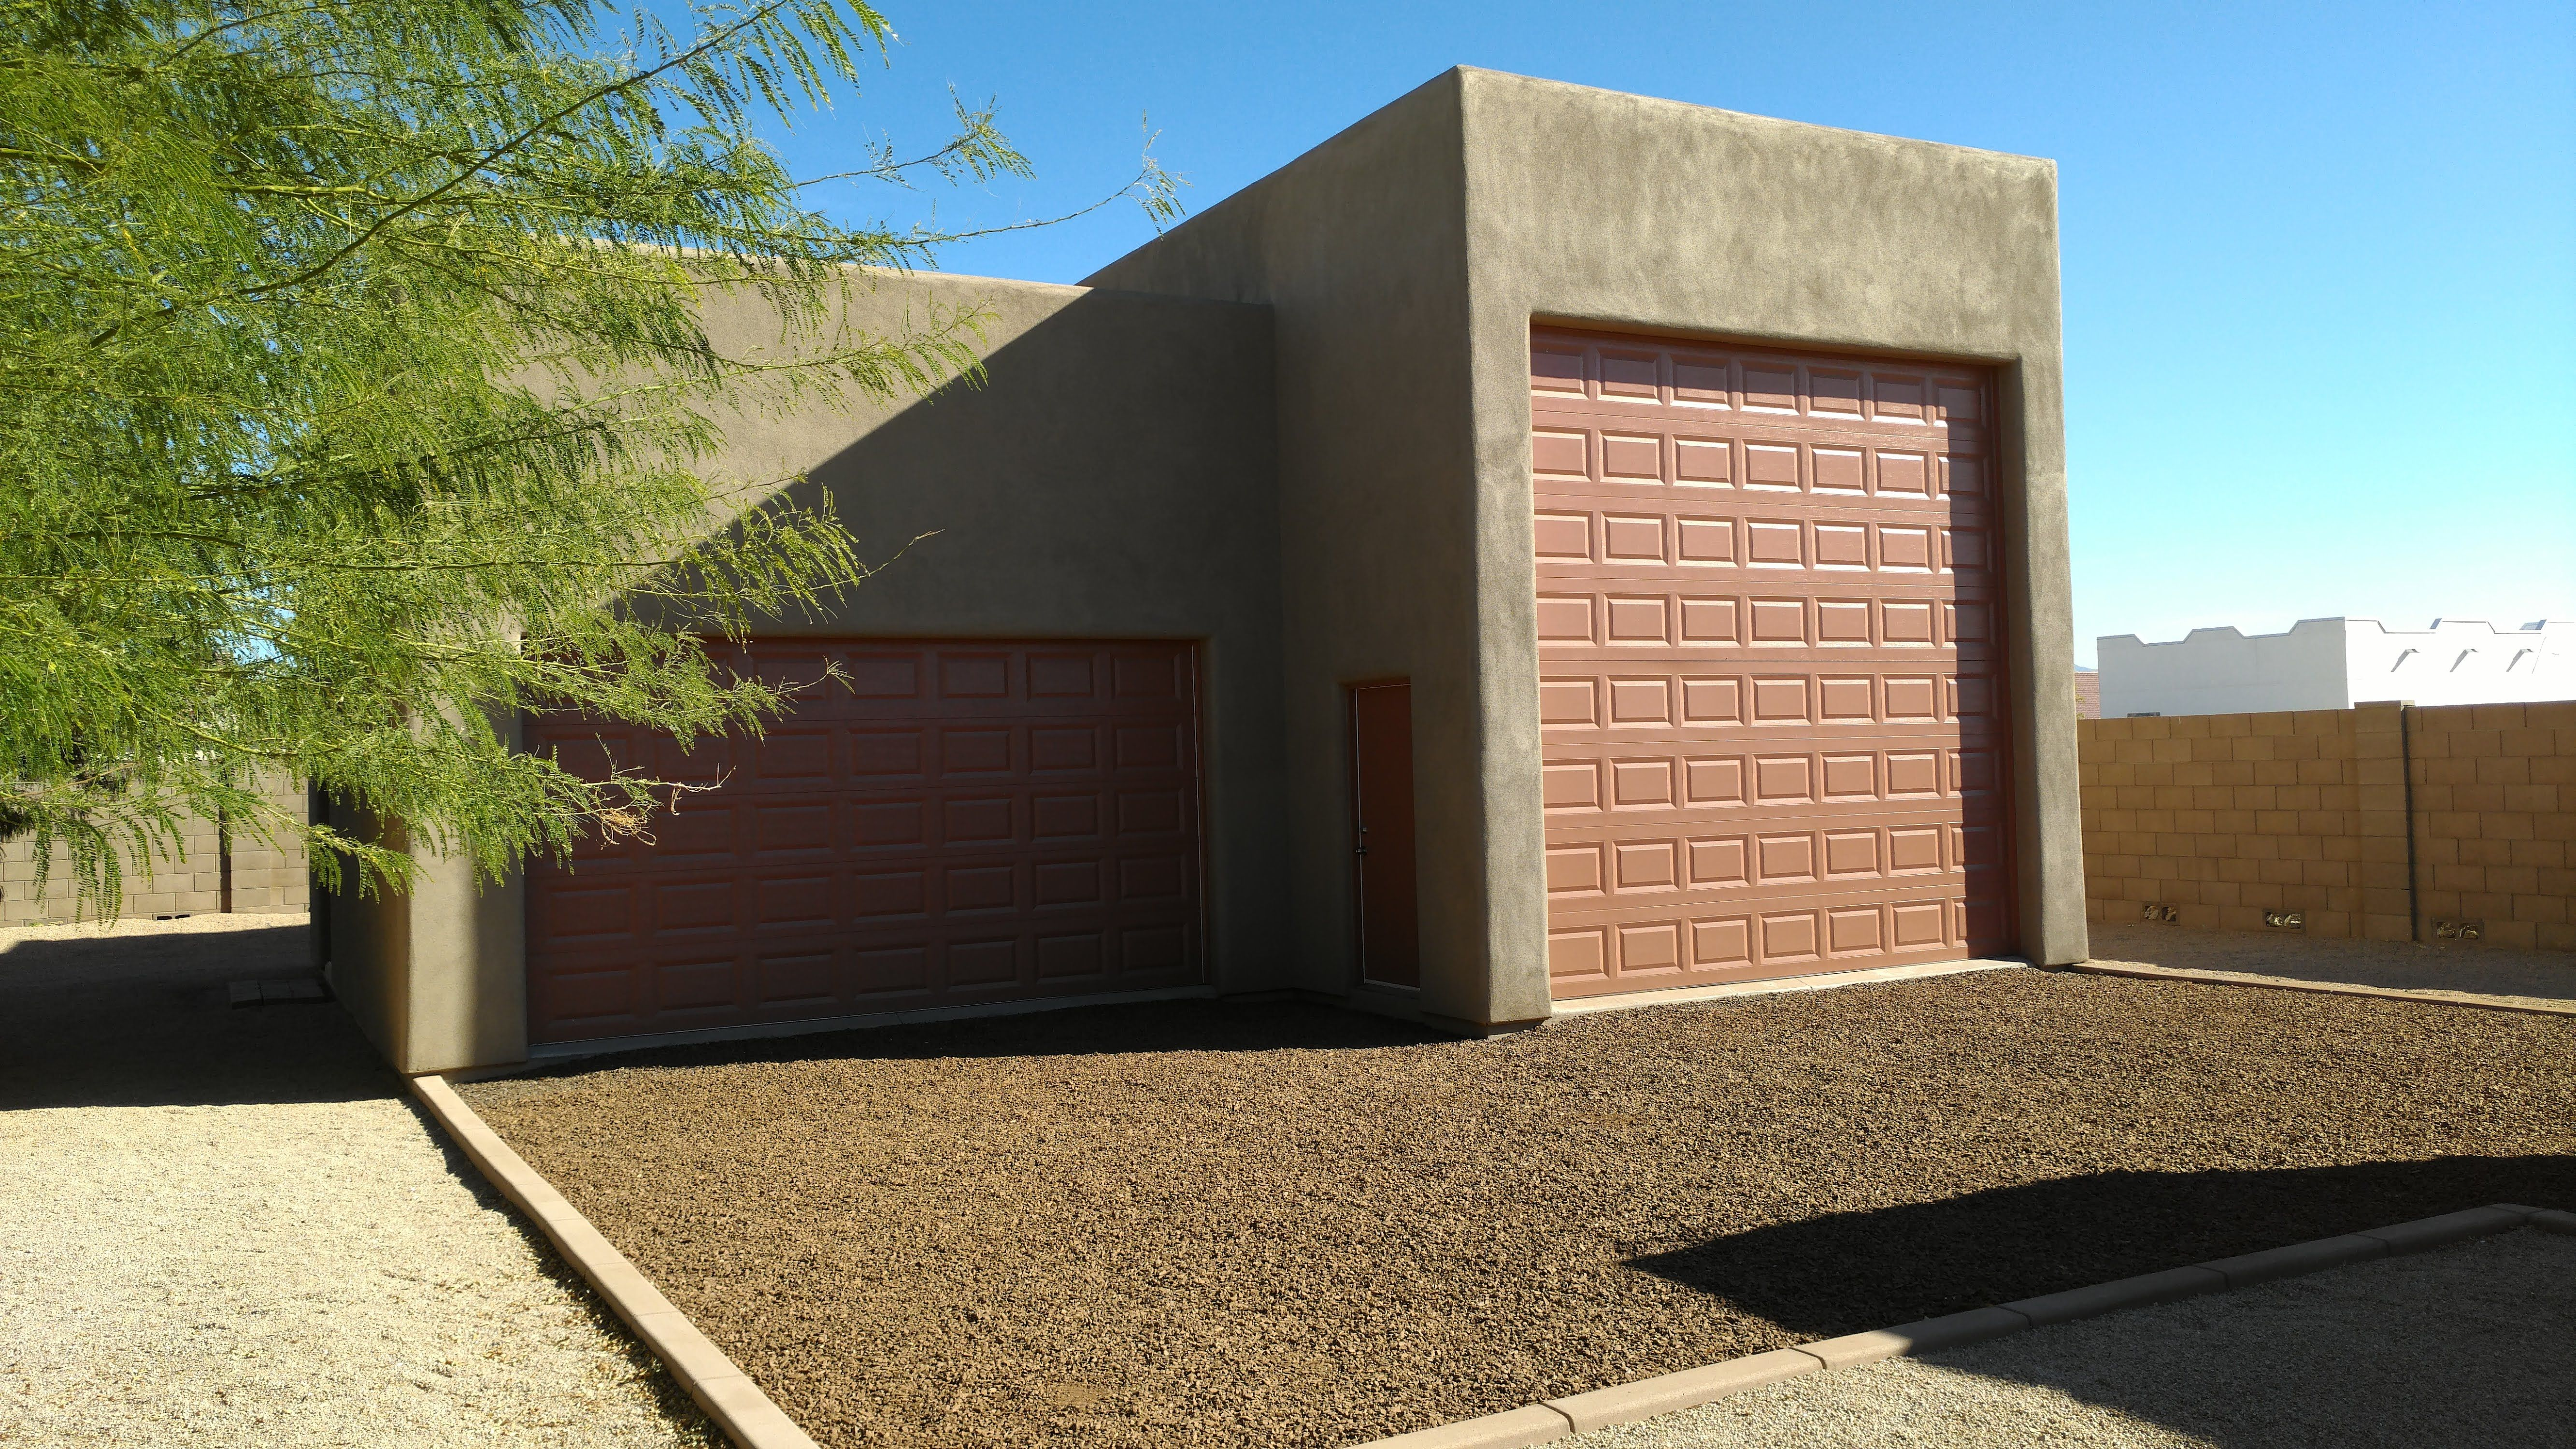 If You Ve Got Southwestern Style We Ve Got The Garage For You The Stucco Exterior And Color Scheme Were Stucco Exterior Shed Construction Build Your Own Shed